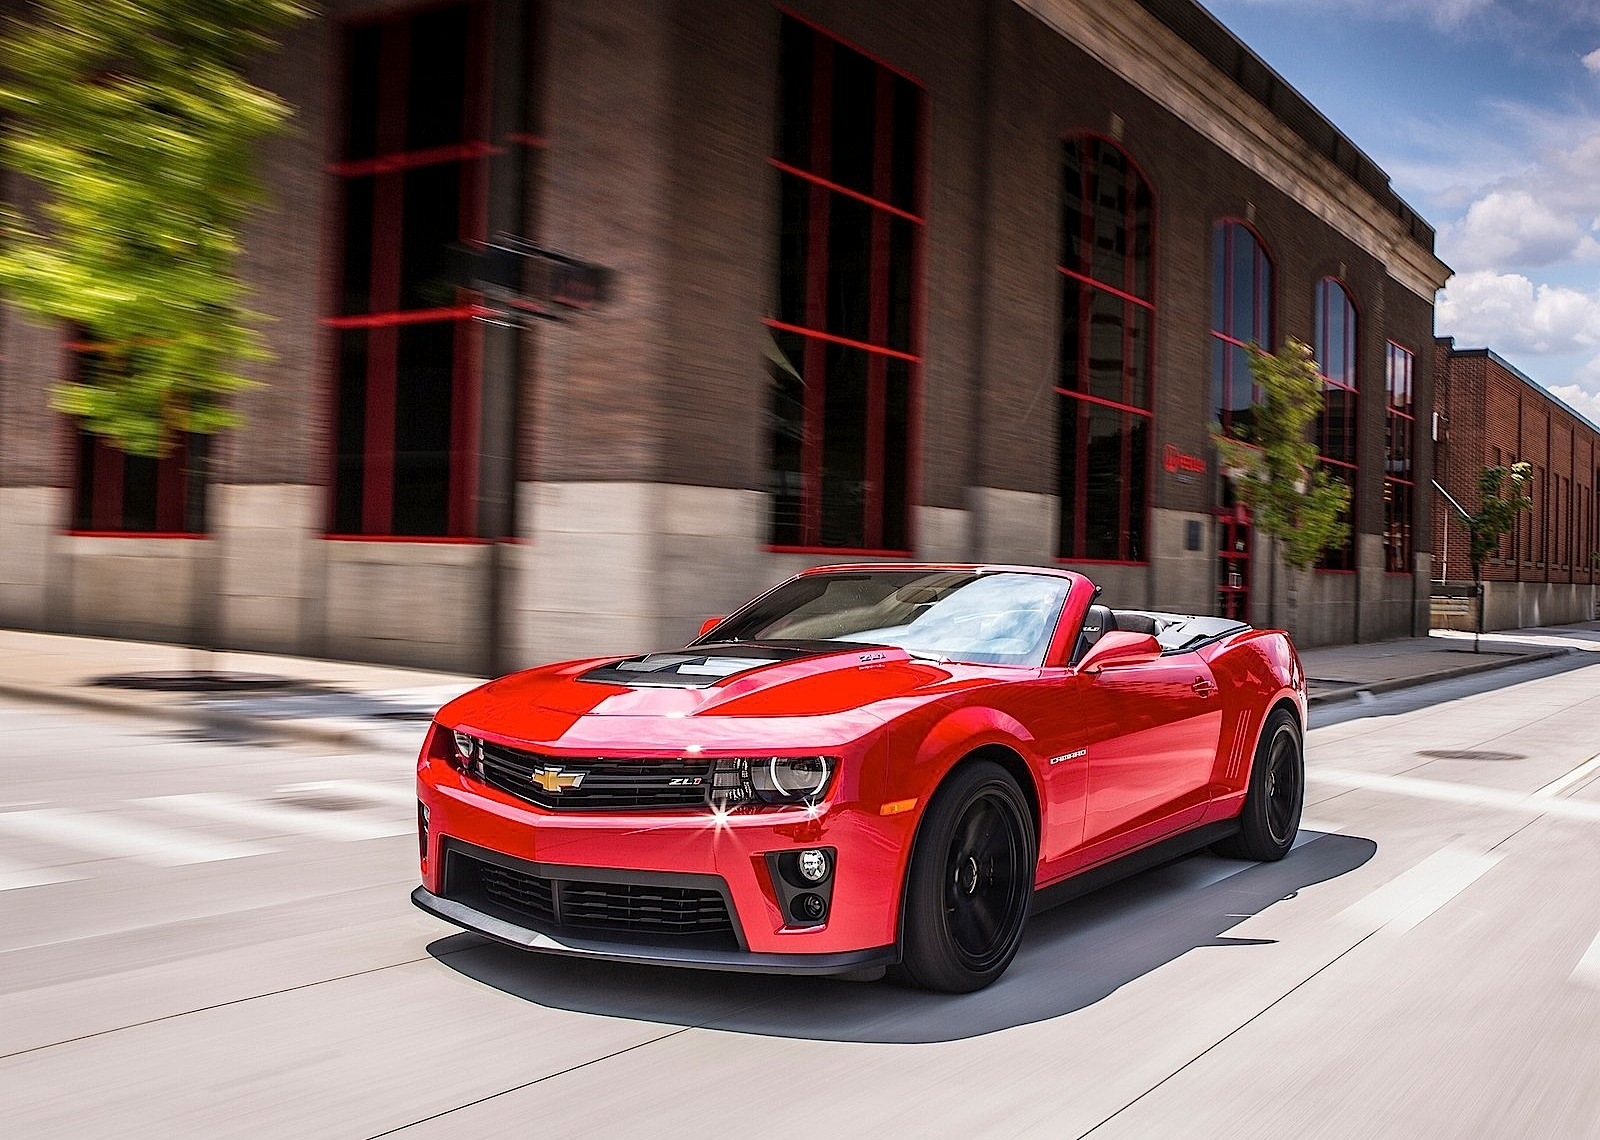 Chevrolet Camaro Zl1 Convertible Specs Amp Photos 2012 2013 2014 2015 2016 Autoevolution